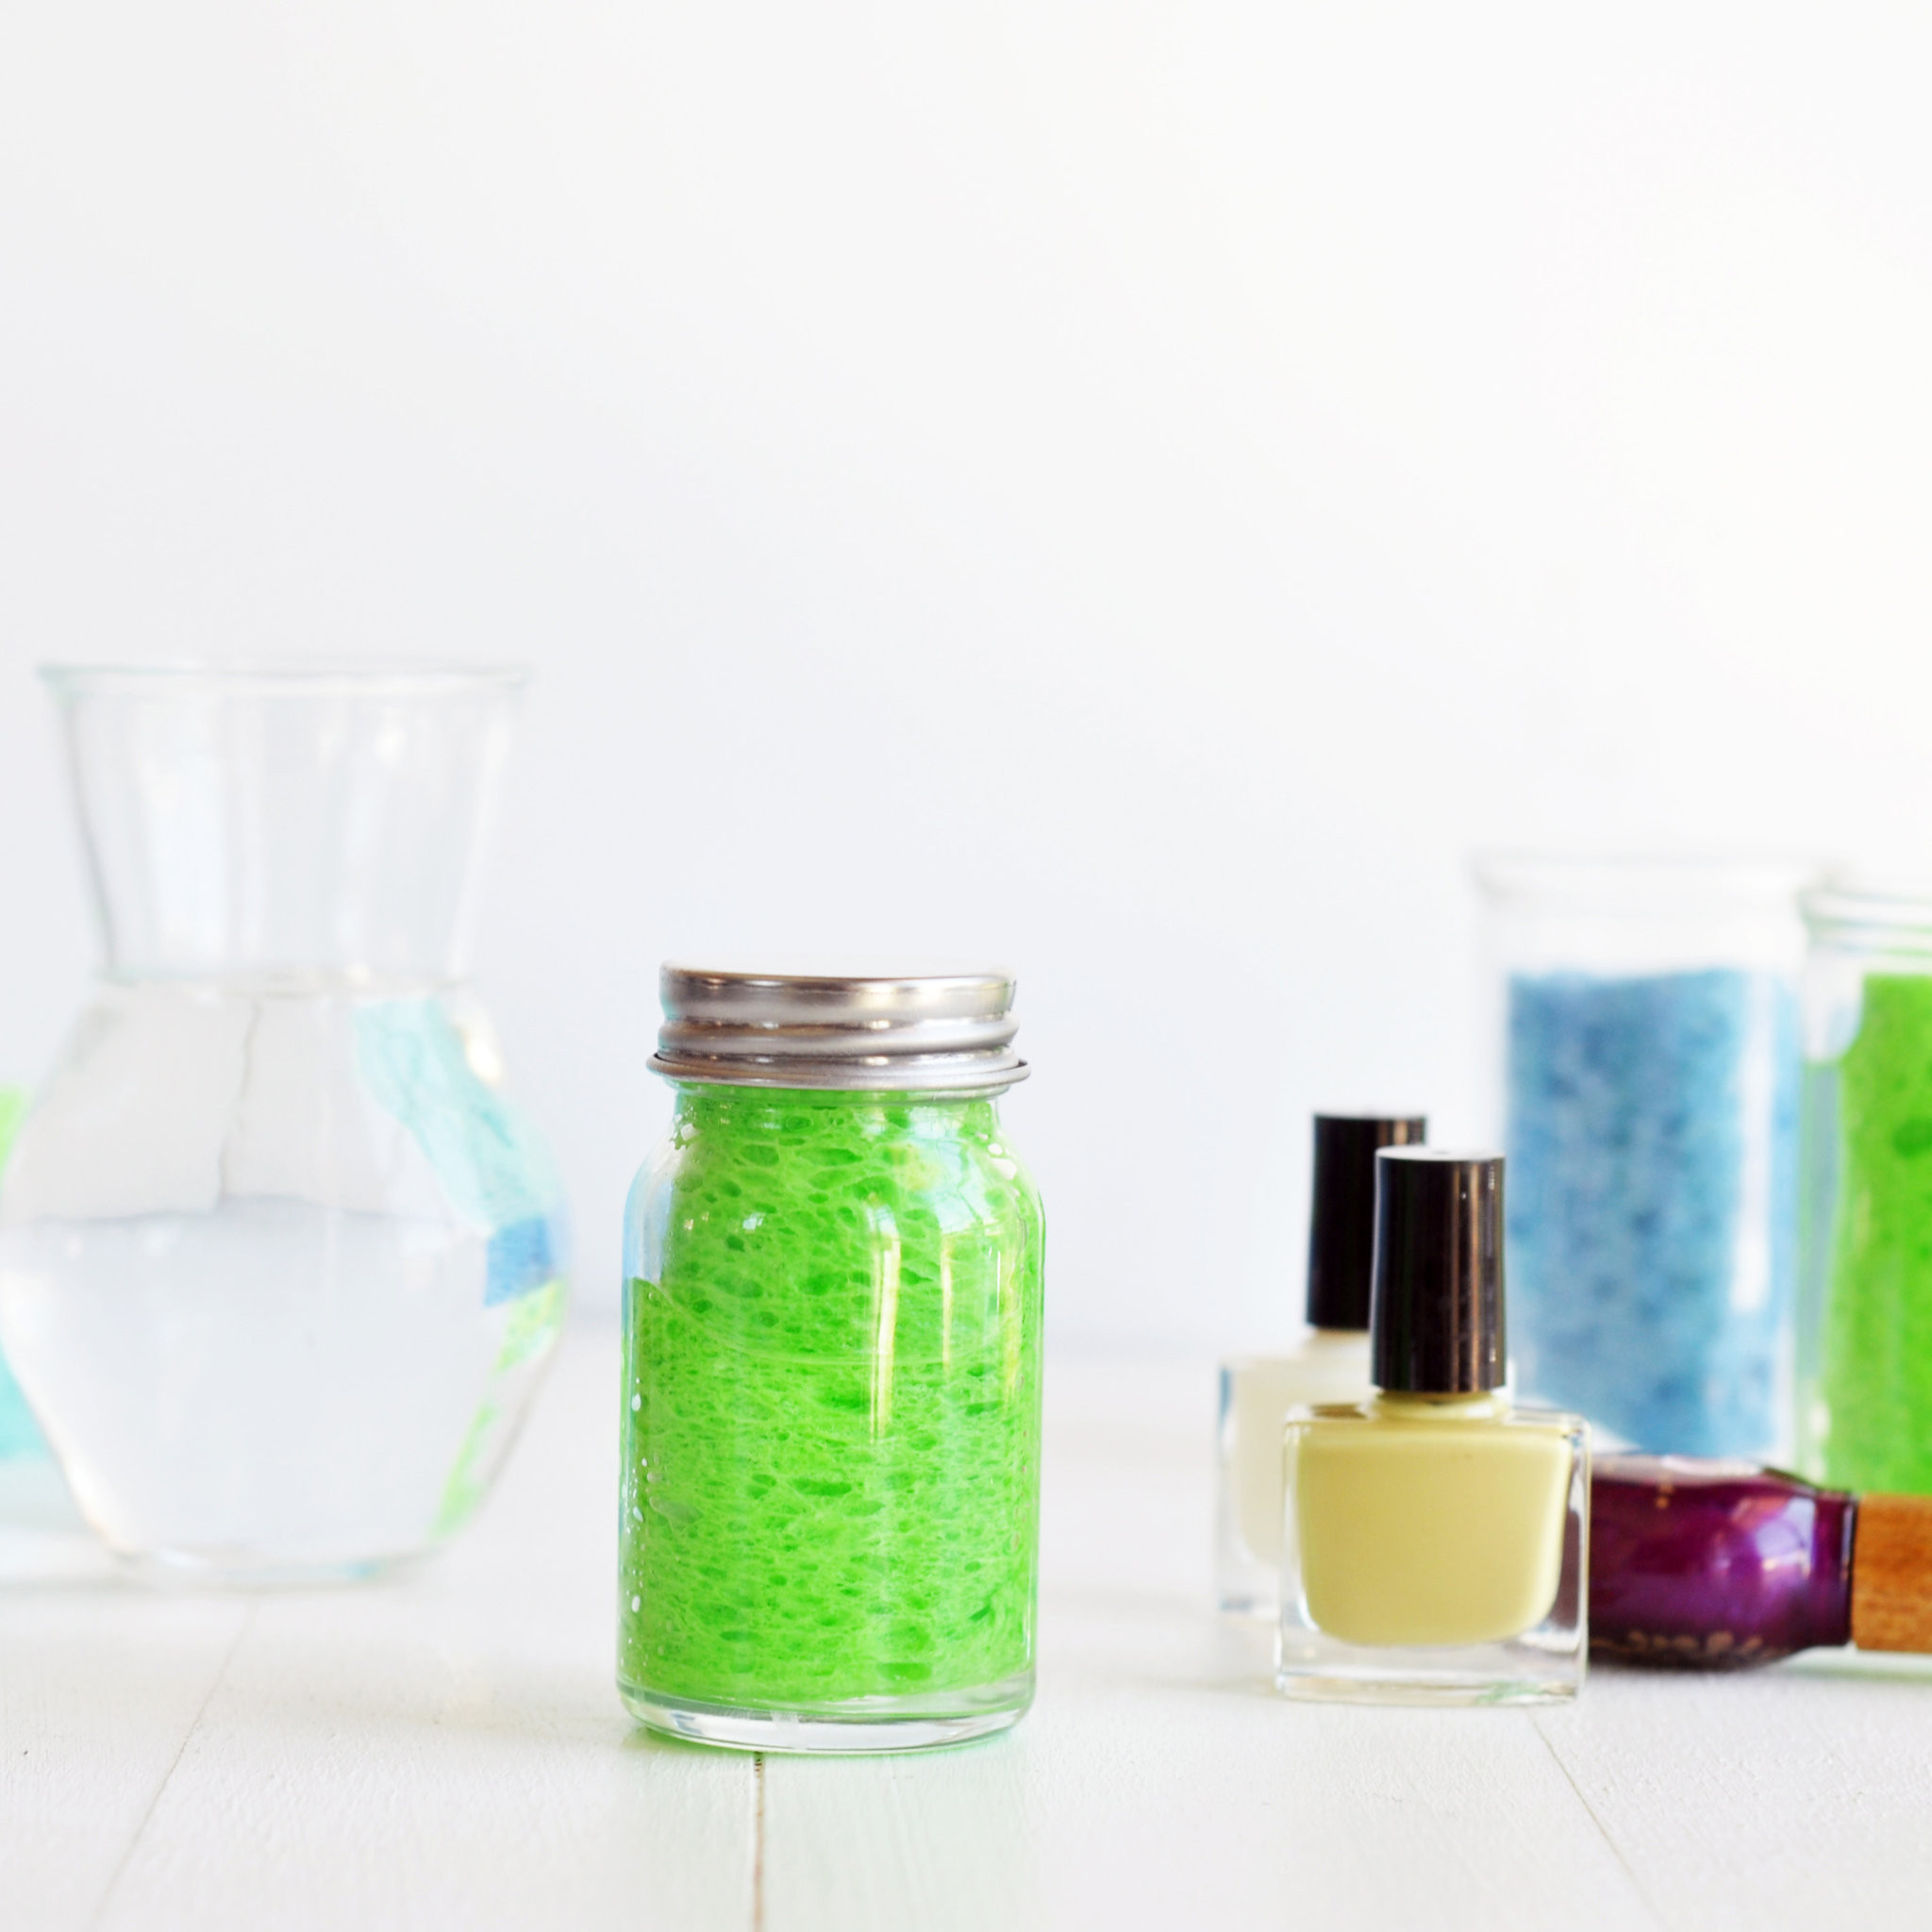 Best ideas about DIY Nail Polish Remover . Save or Pin DIY Nail Polish Remover Now.